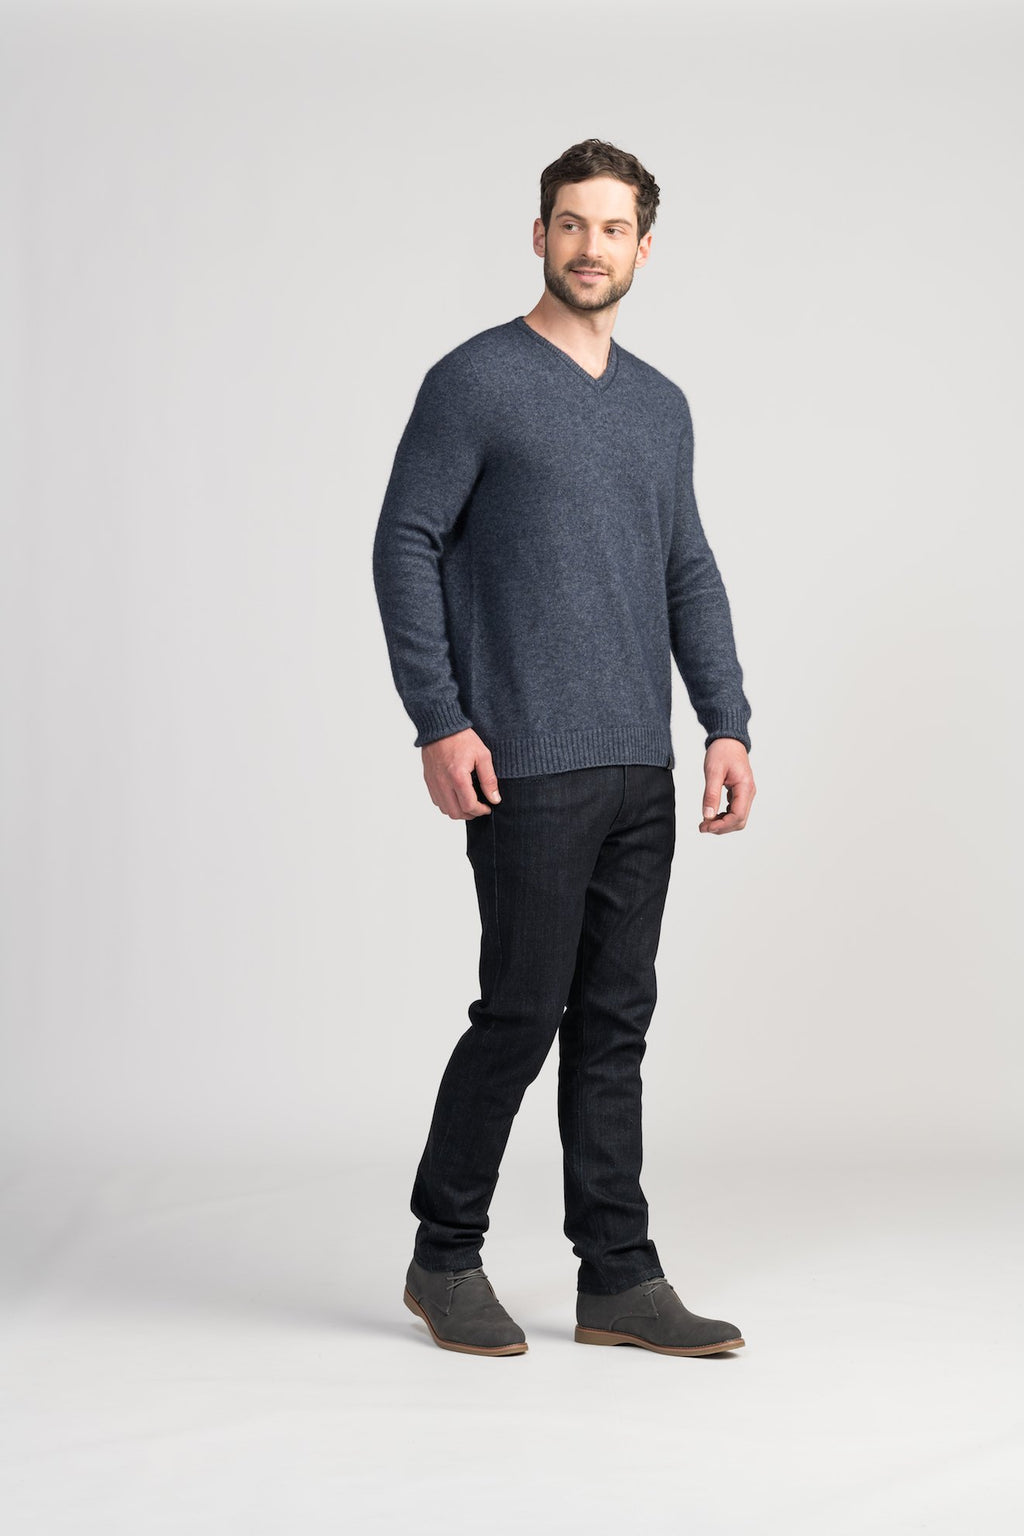 CLASSIC V SWEATER - Woolshed Gallery